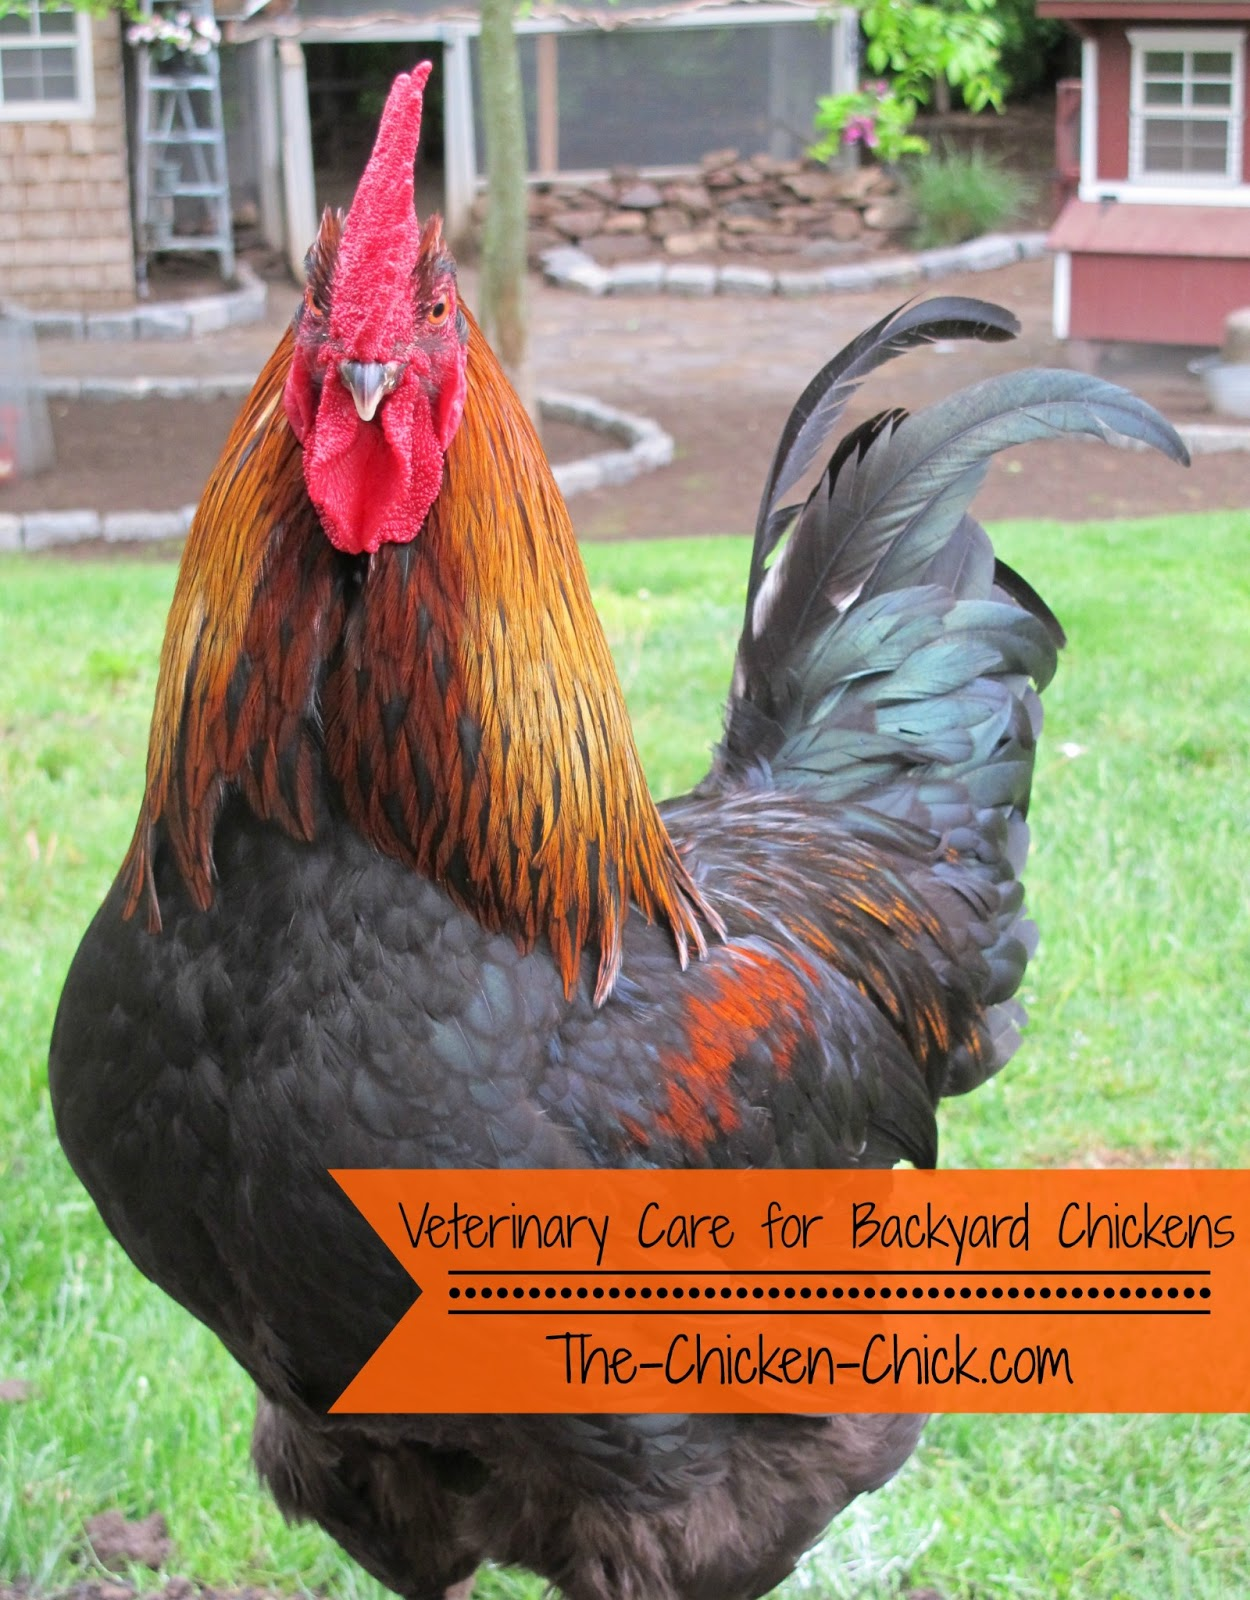 Veterinary Care For Backyard Chickens A Dialogue That